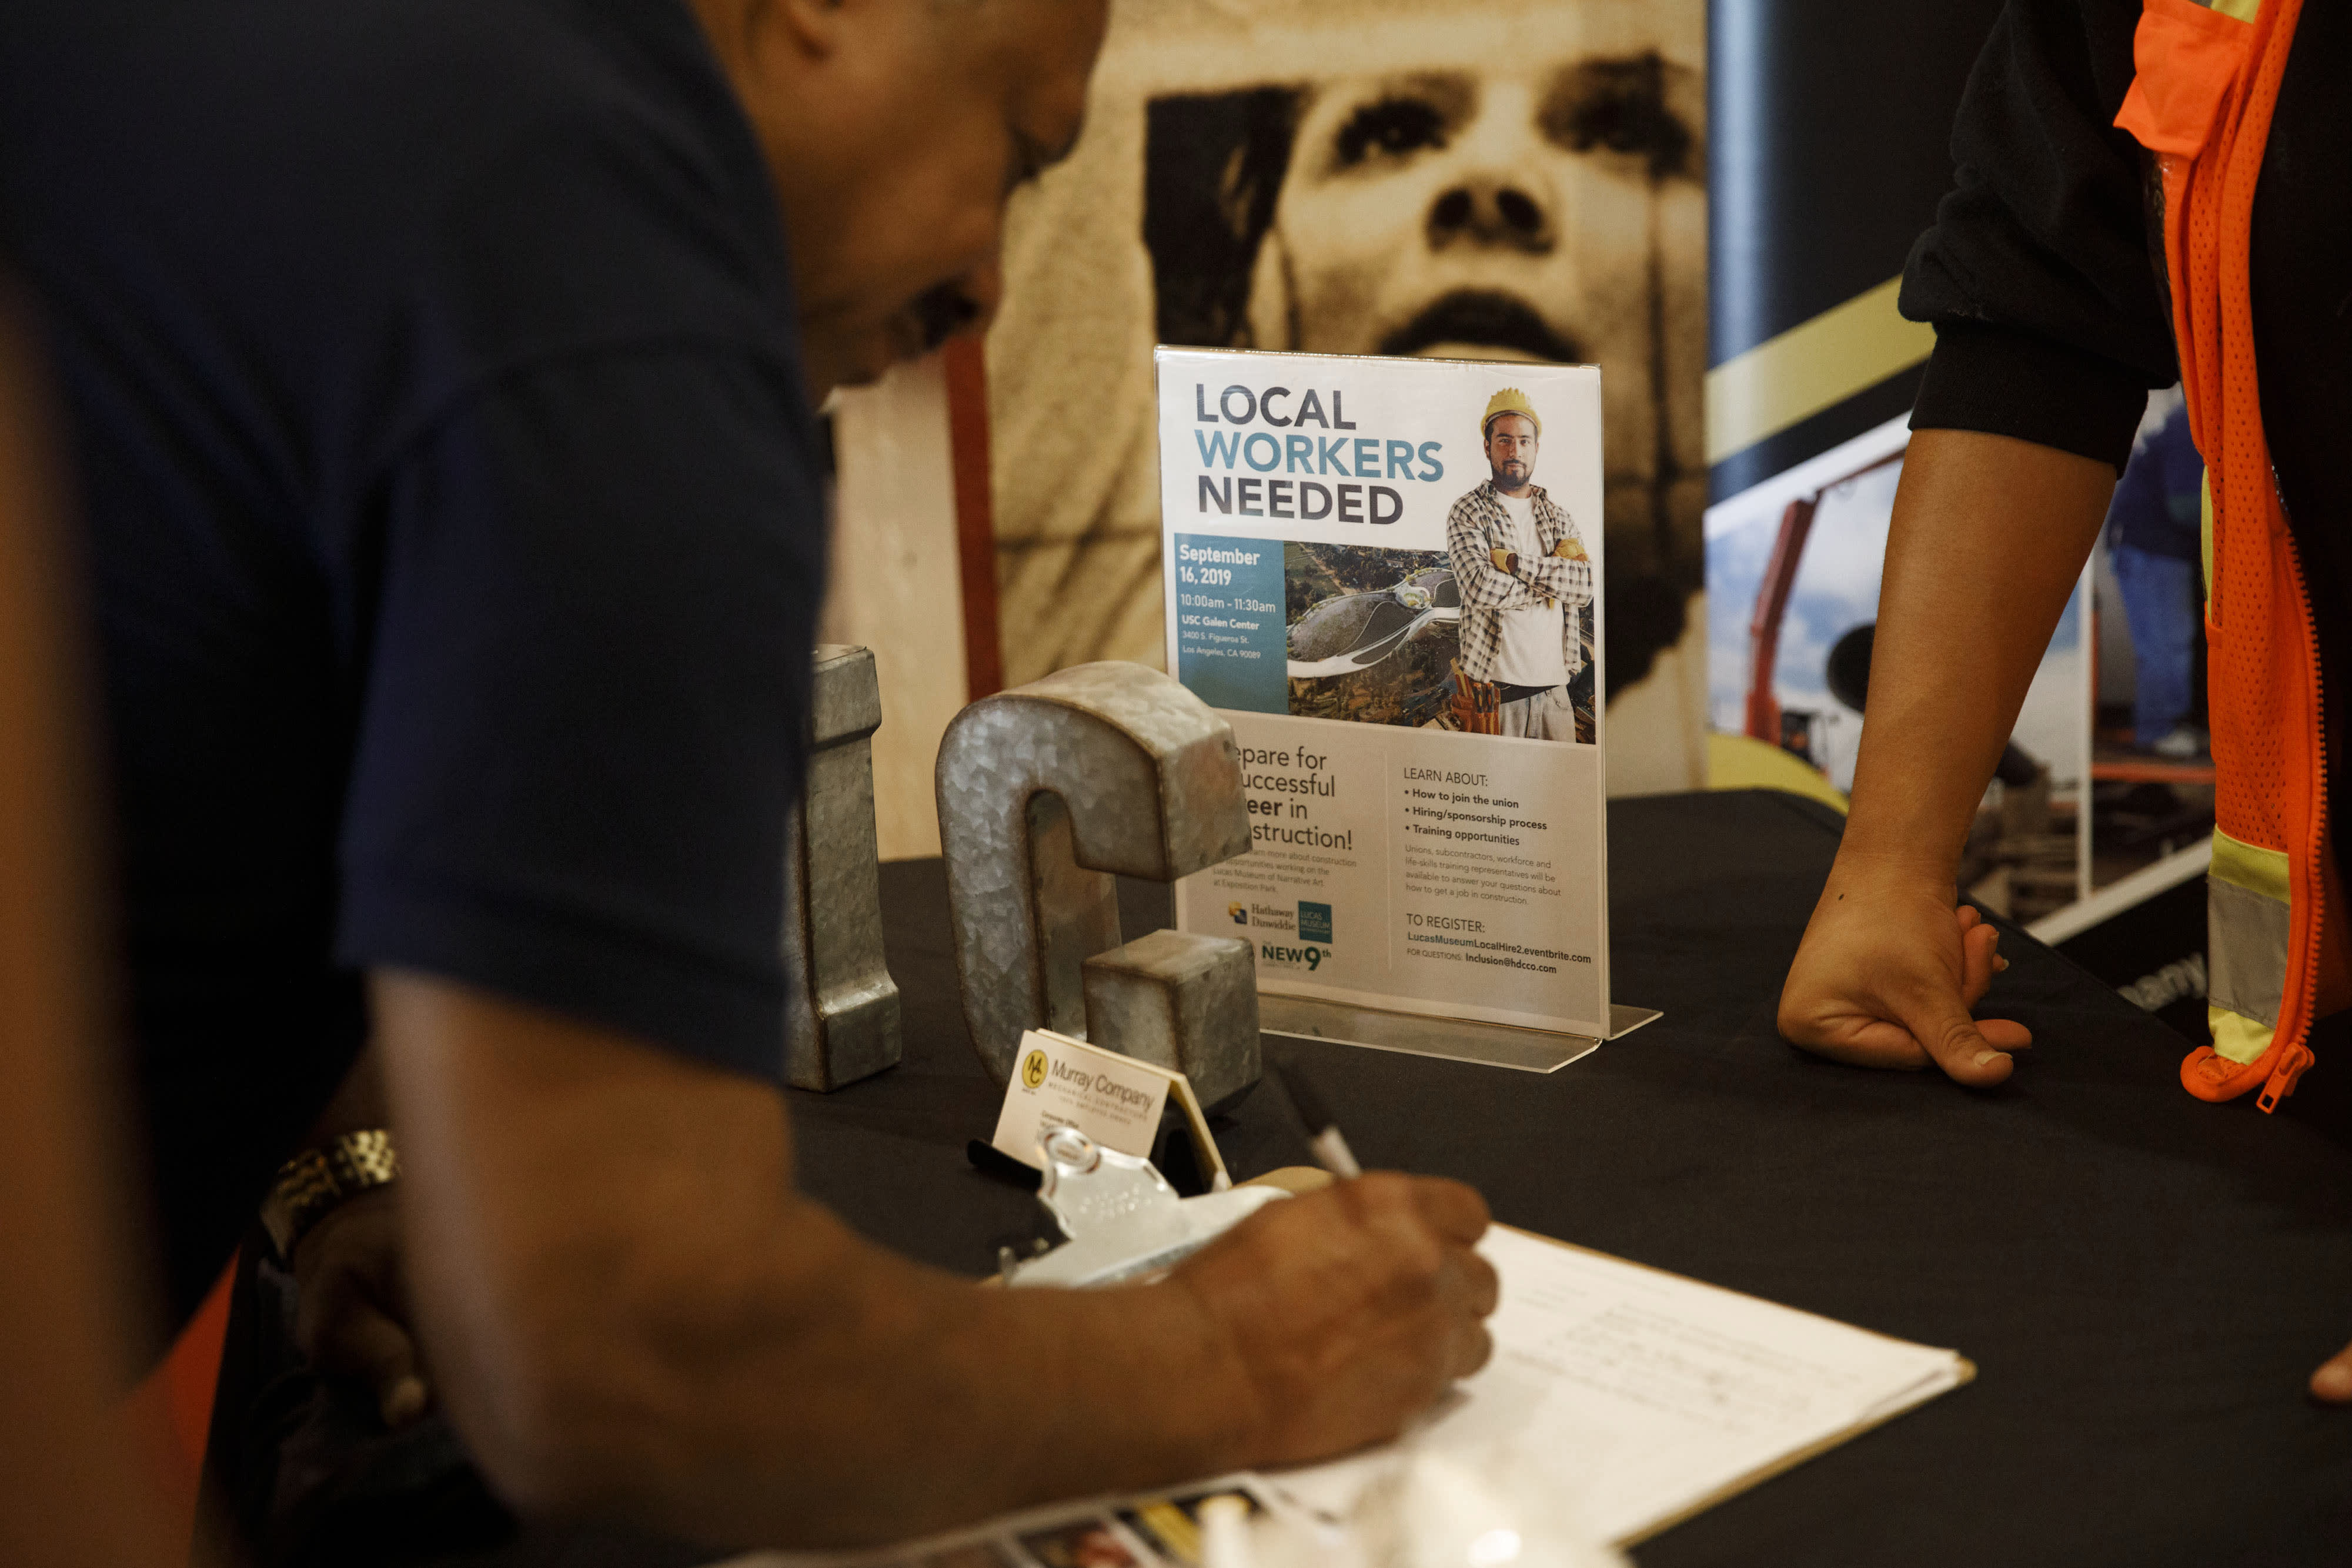 Weekly jobless claims jump to 281,000 ahead of surge in coronavirus layoffs